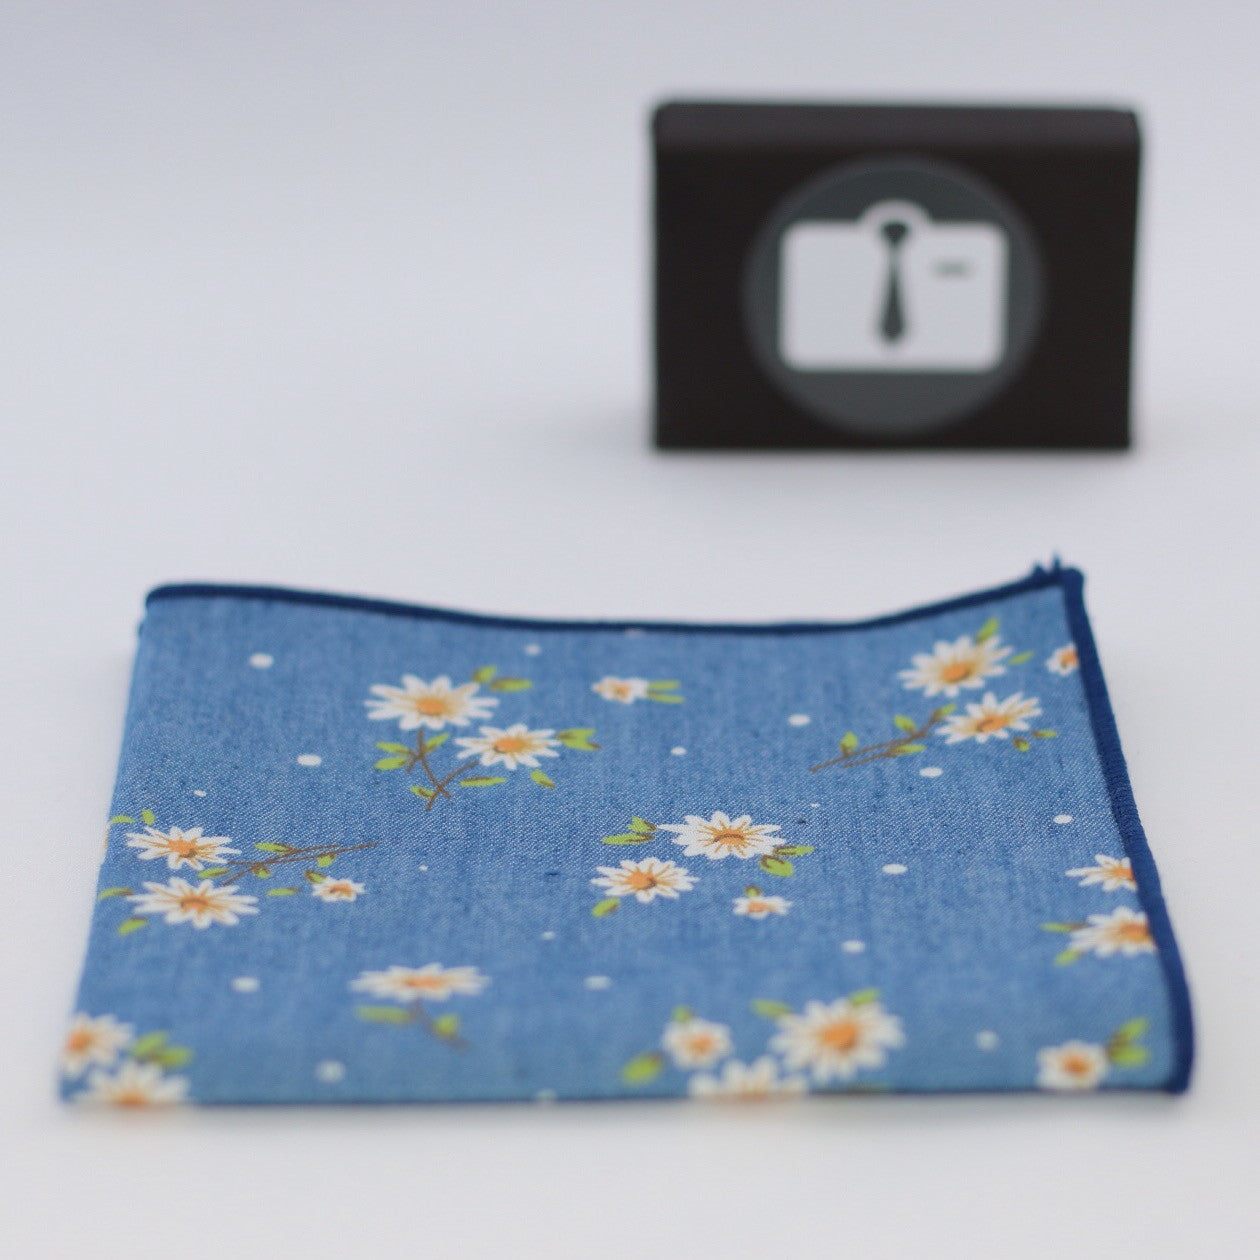 Blue Floral Pocket Square With White Daisy Design